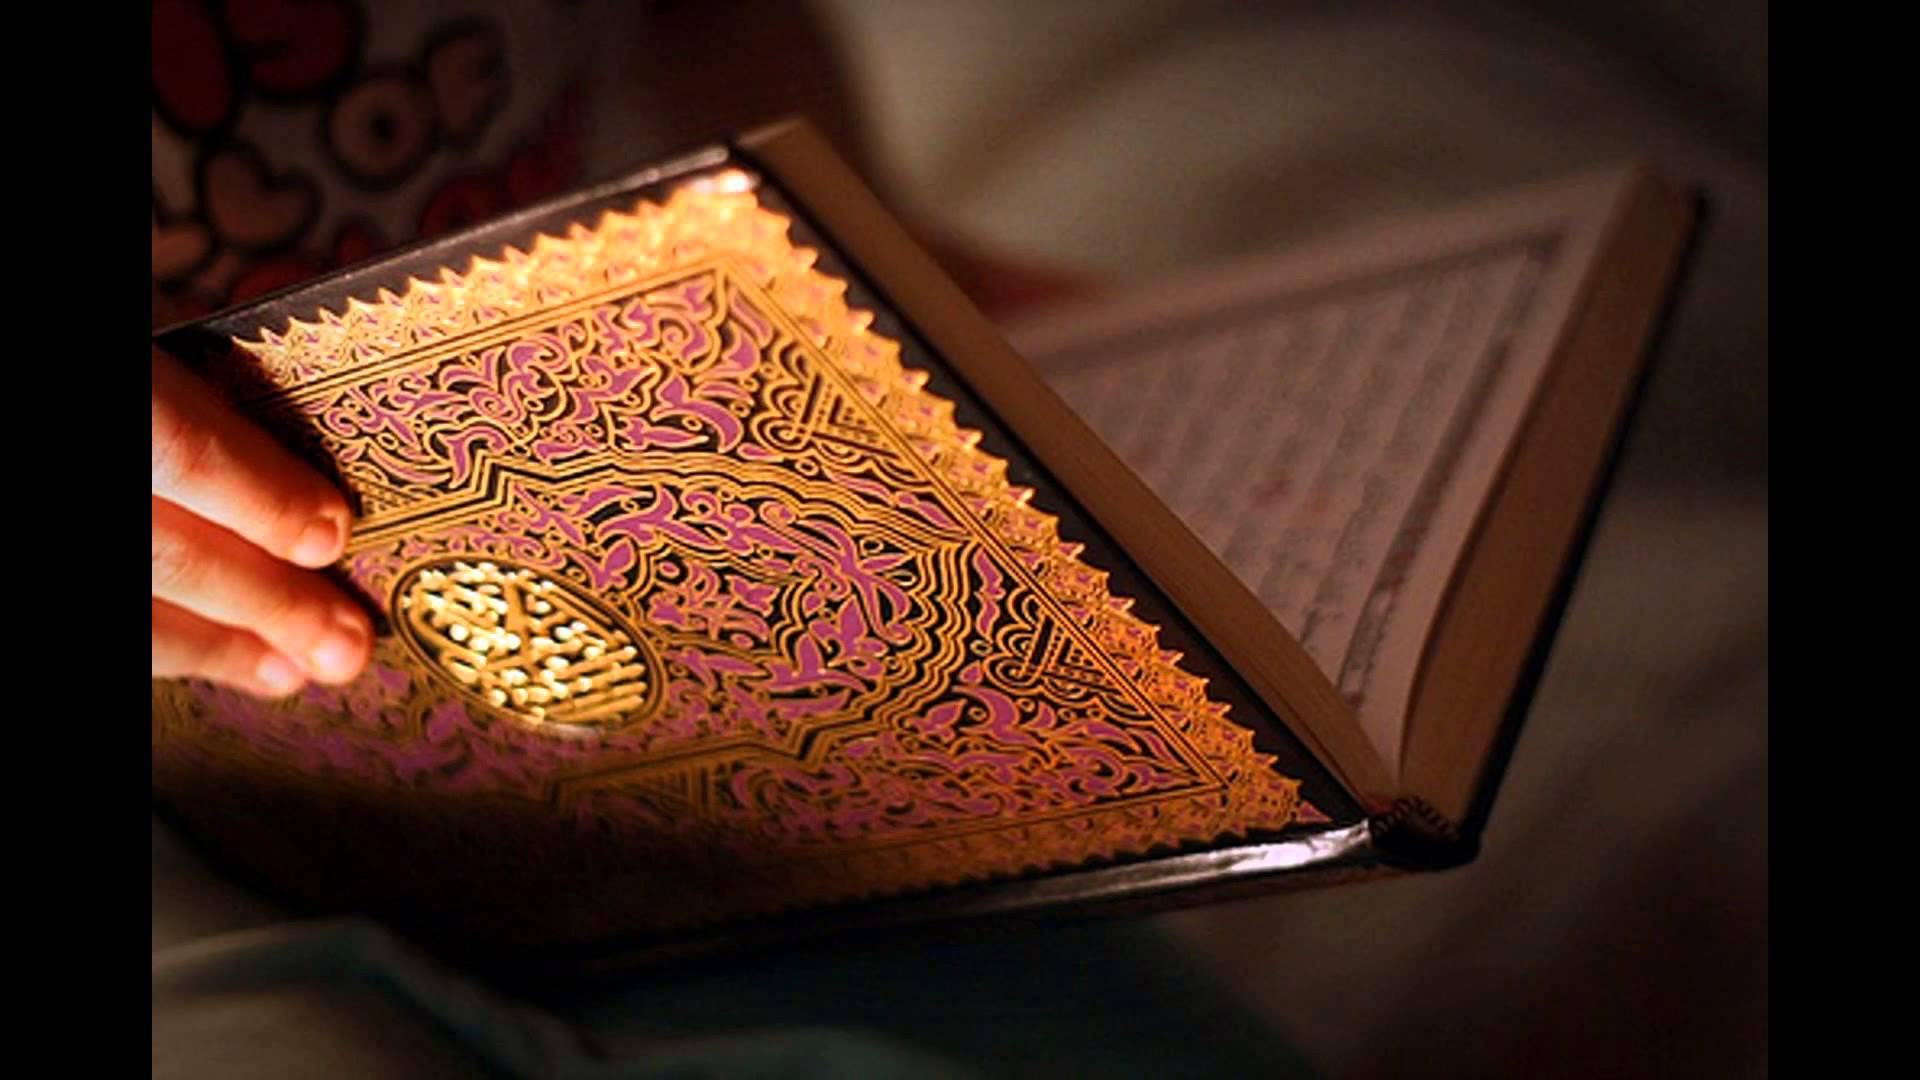 How Can New Muslims Read  Understand Quran  About Islam